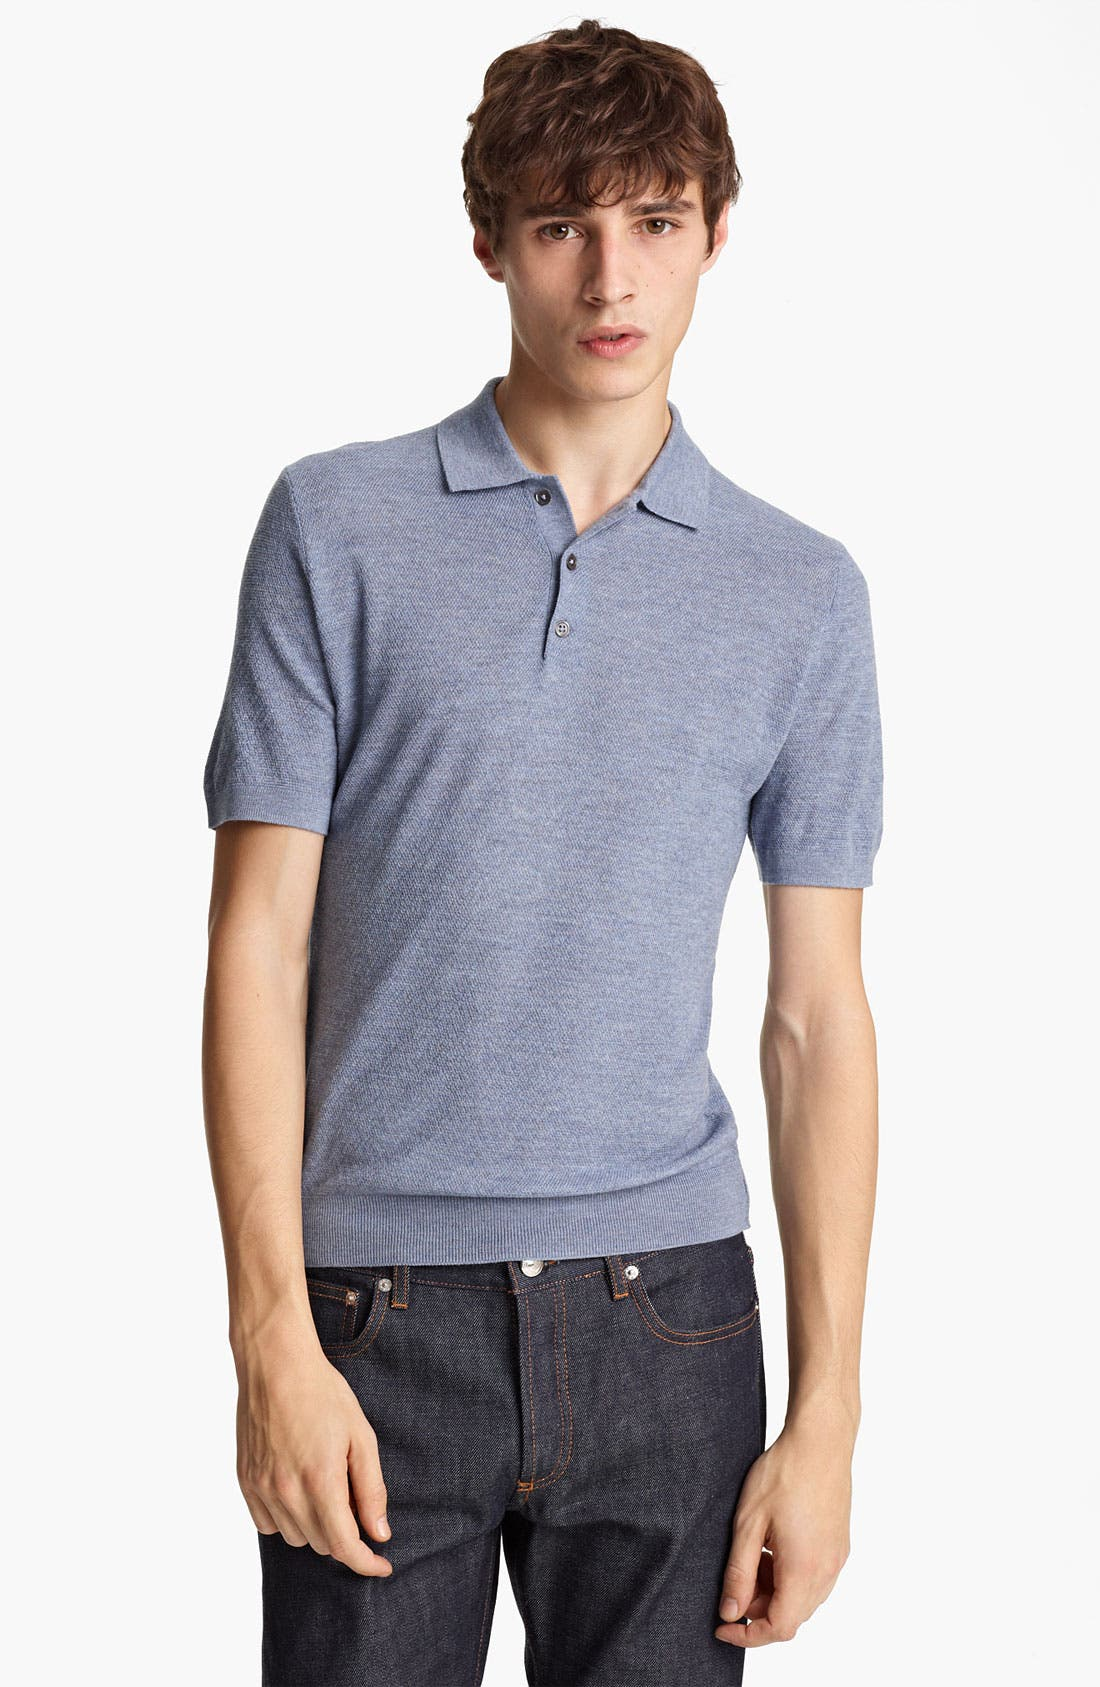 Alternate Image 1 Selected - Pringle of Scotland Merino Wool Knit Polo